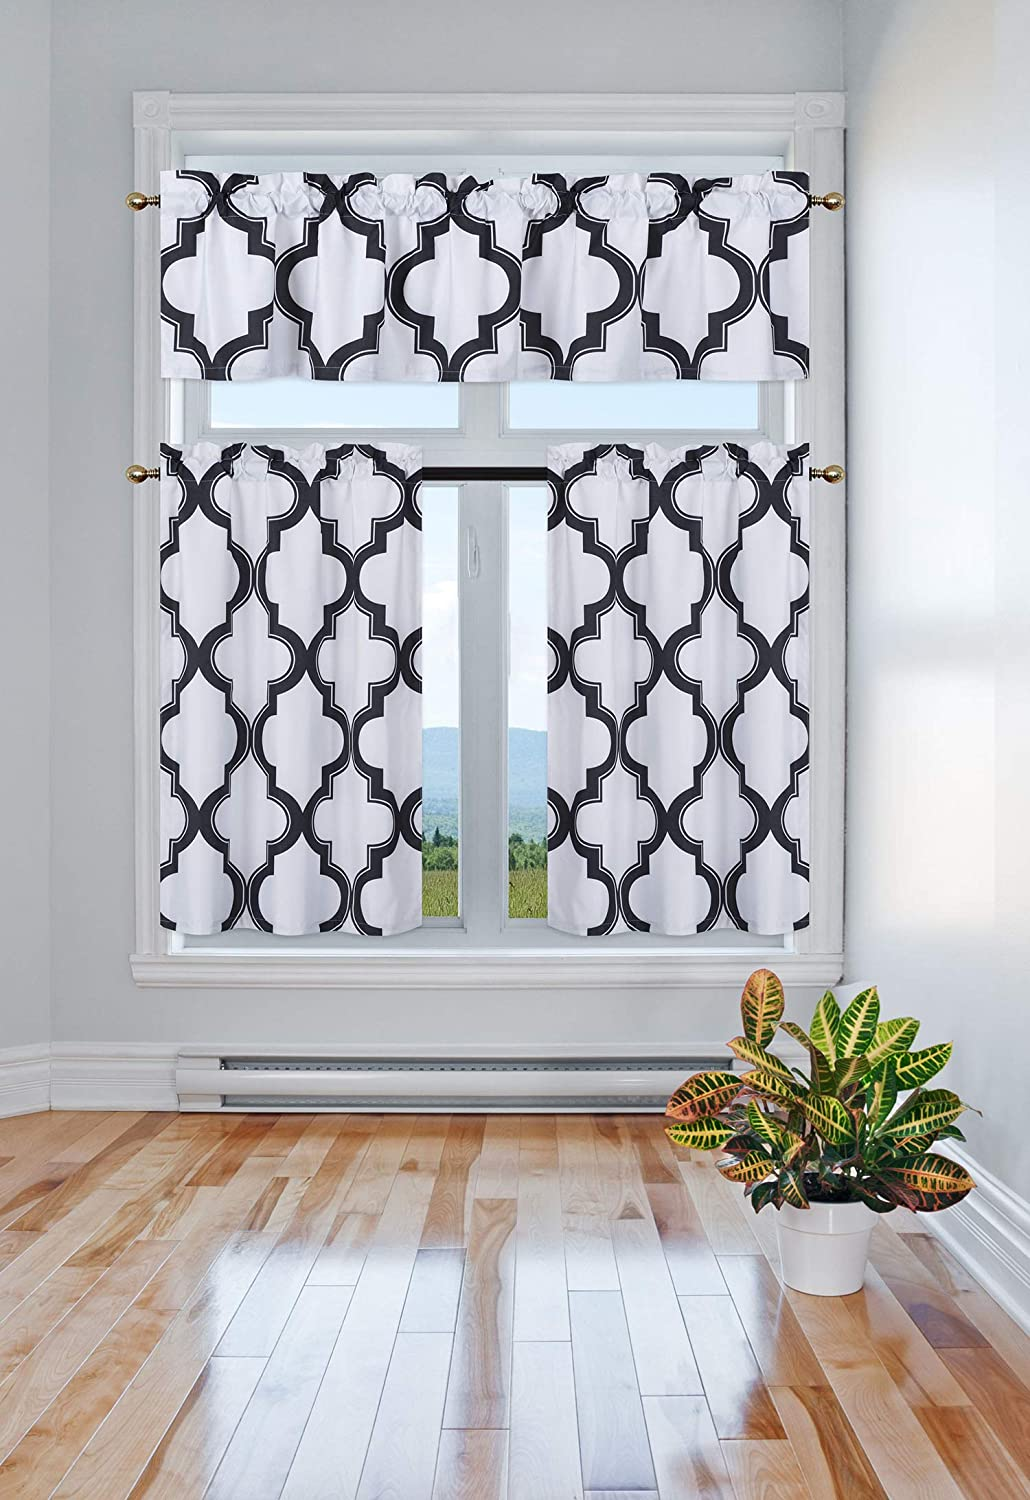 GorgeousHome (7LO) 3PC Kitchen Set 2 Tier +1 Valance Geometric 2-Shade Print Lined Blackout Window Curtain Rod Pocket Top Panel Drape Many Colors (Black)